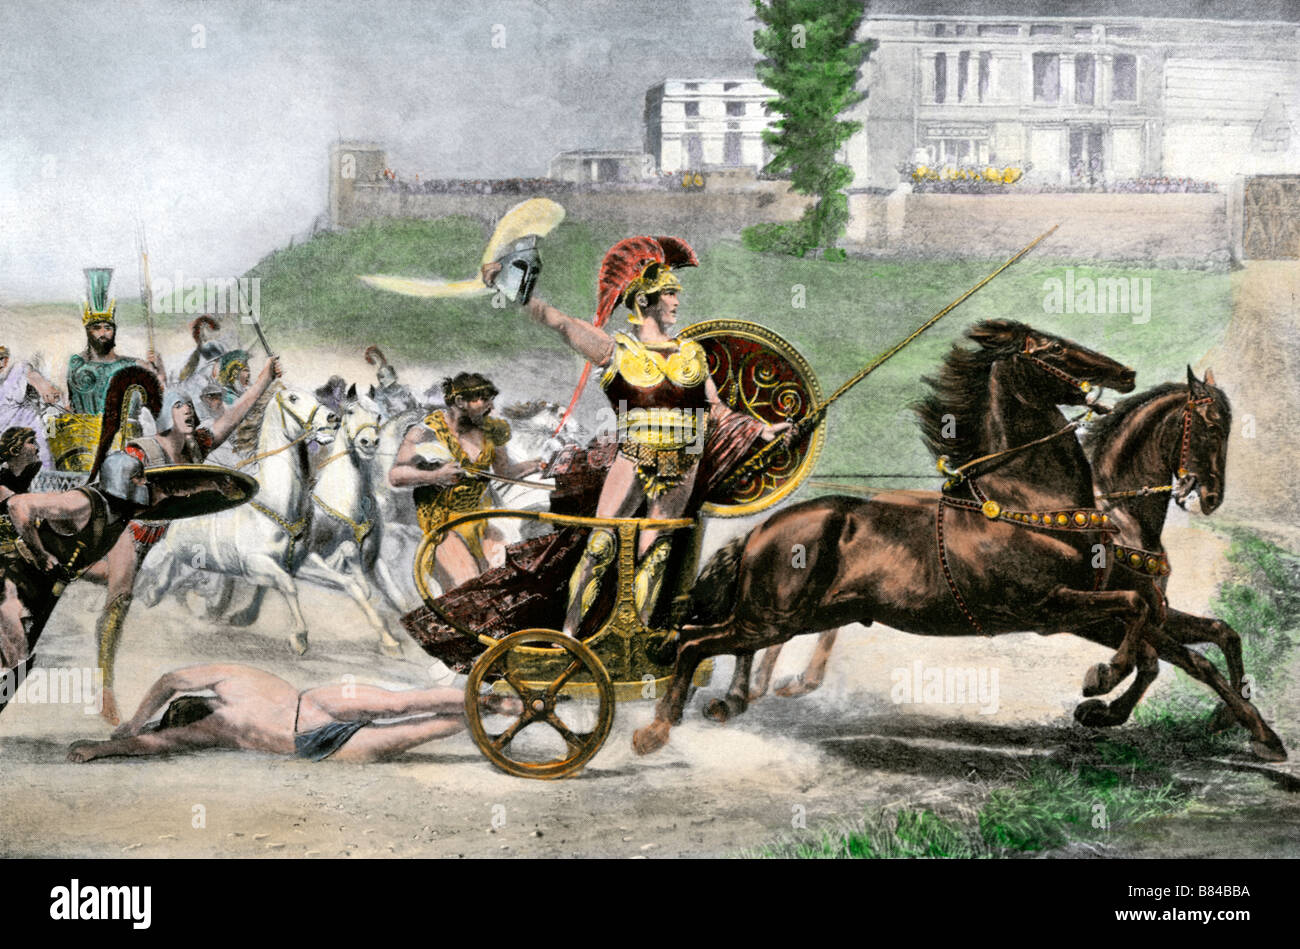 Greek hero Achilles dragging Hector's body behind his chariot in the Trojan wars - Stock Image